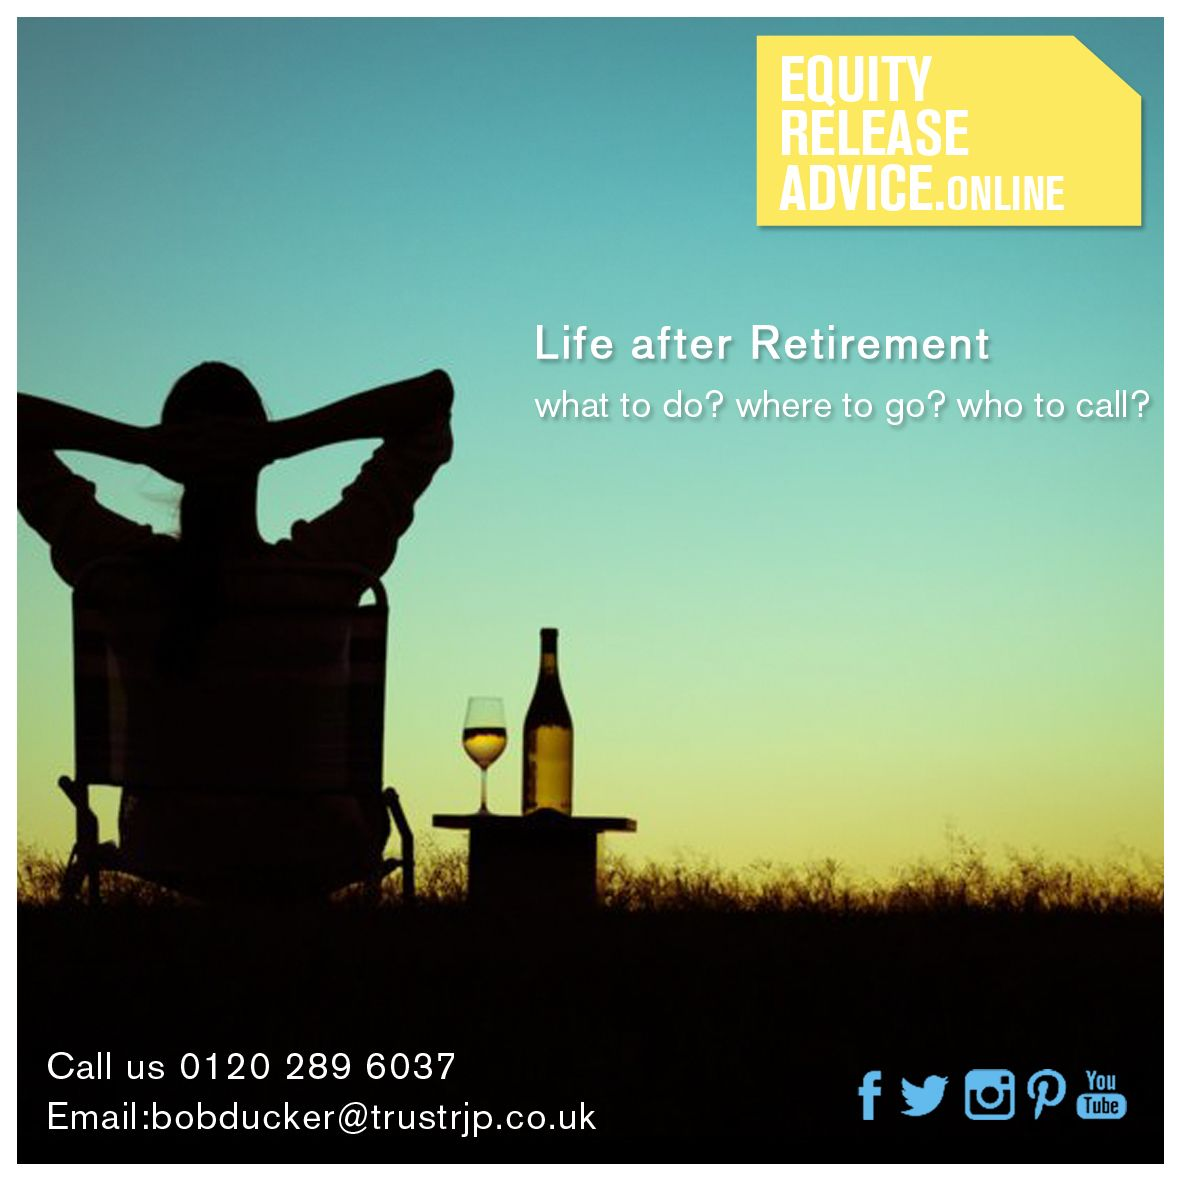 Your retirement years should be a time to settle down and